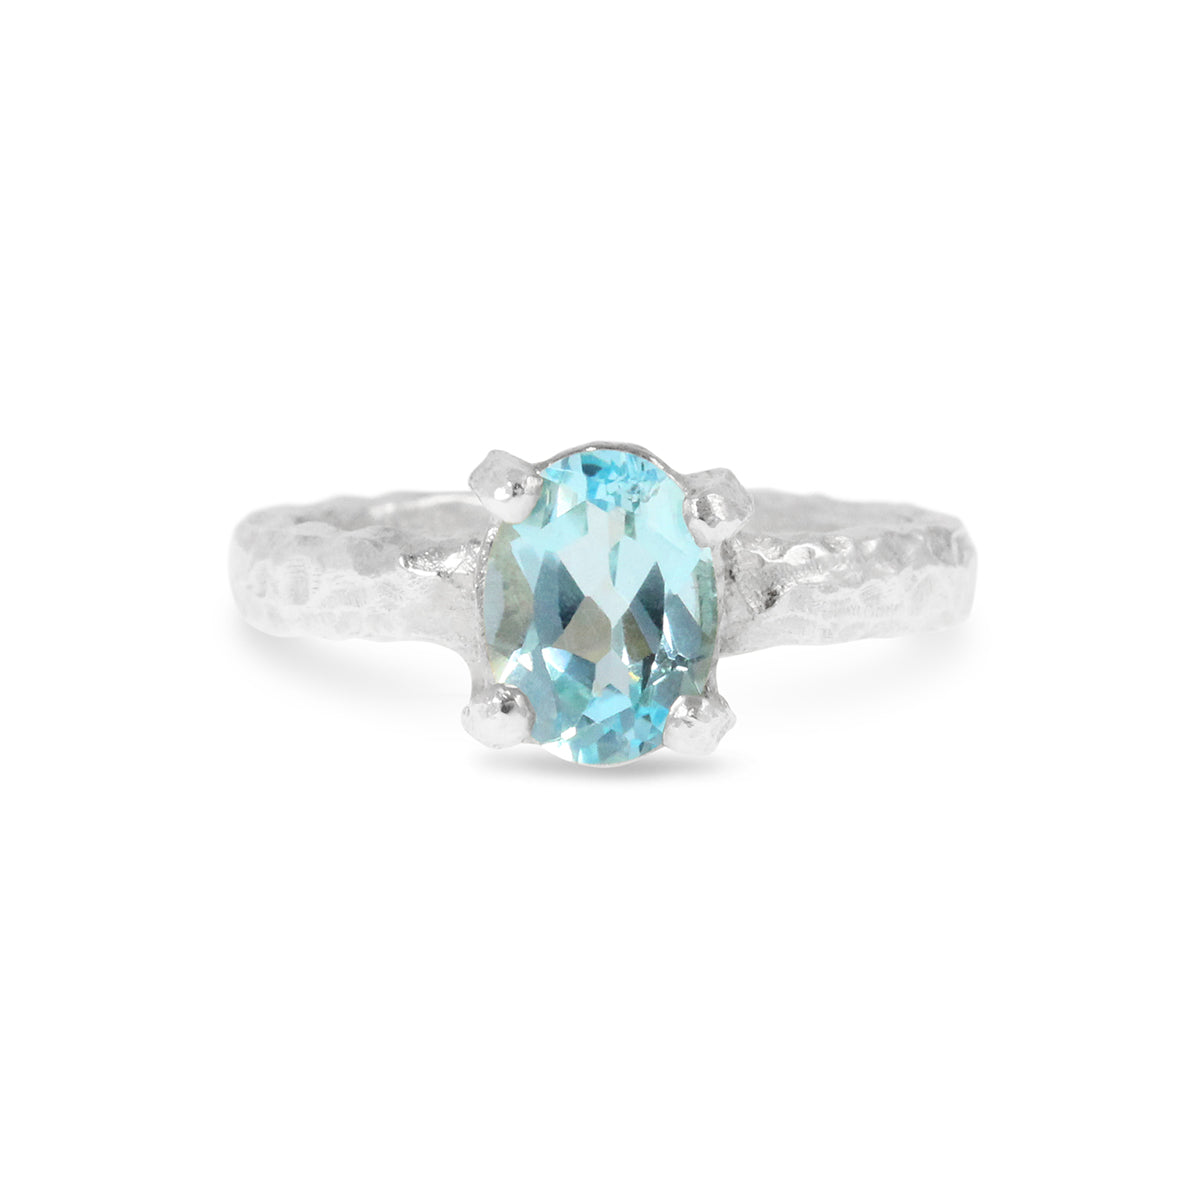 Unique handmade contemporary ring in sterling silver set with blue topaz. - Paul Magen